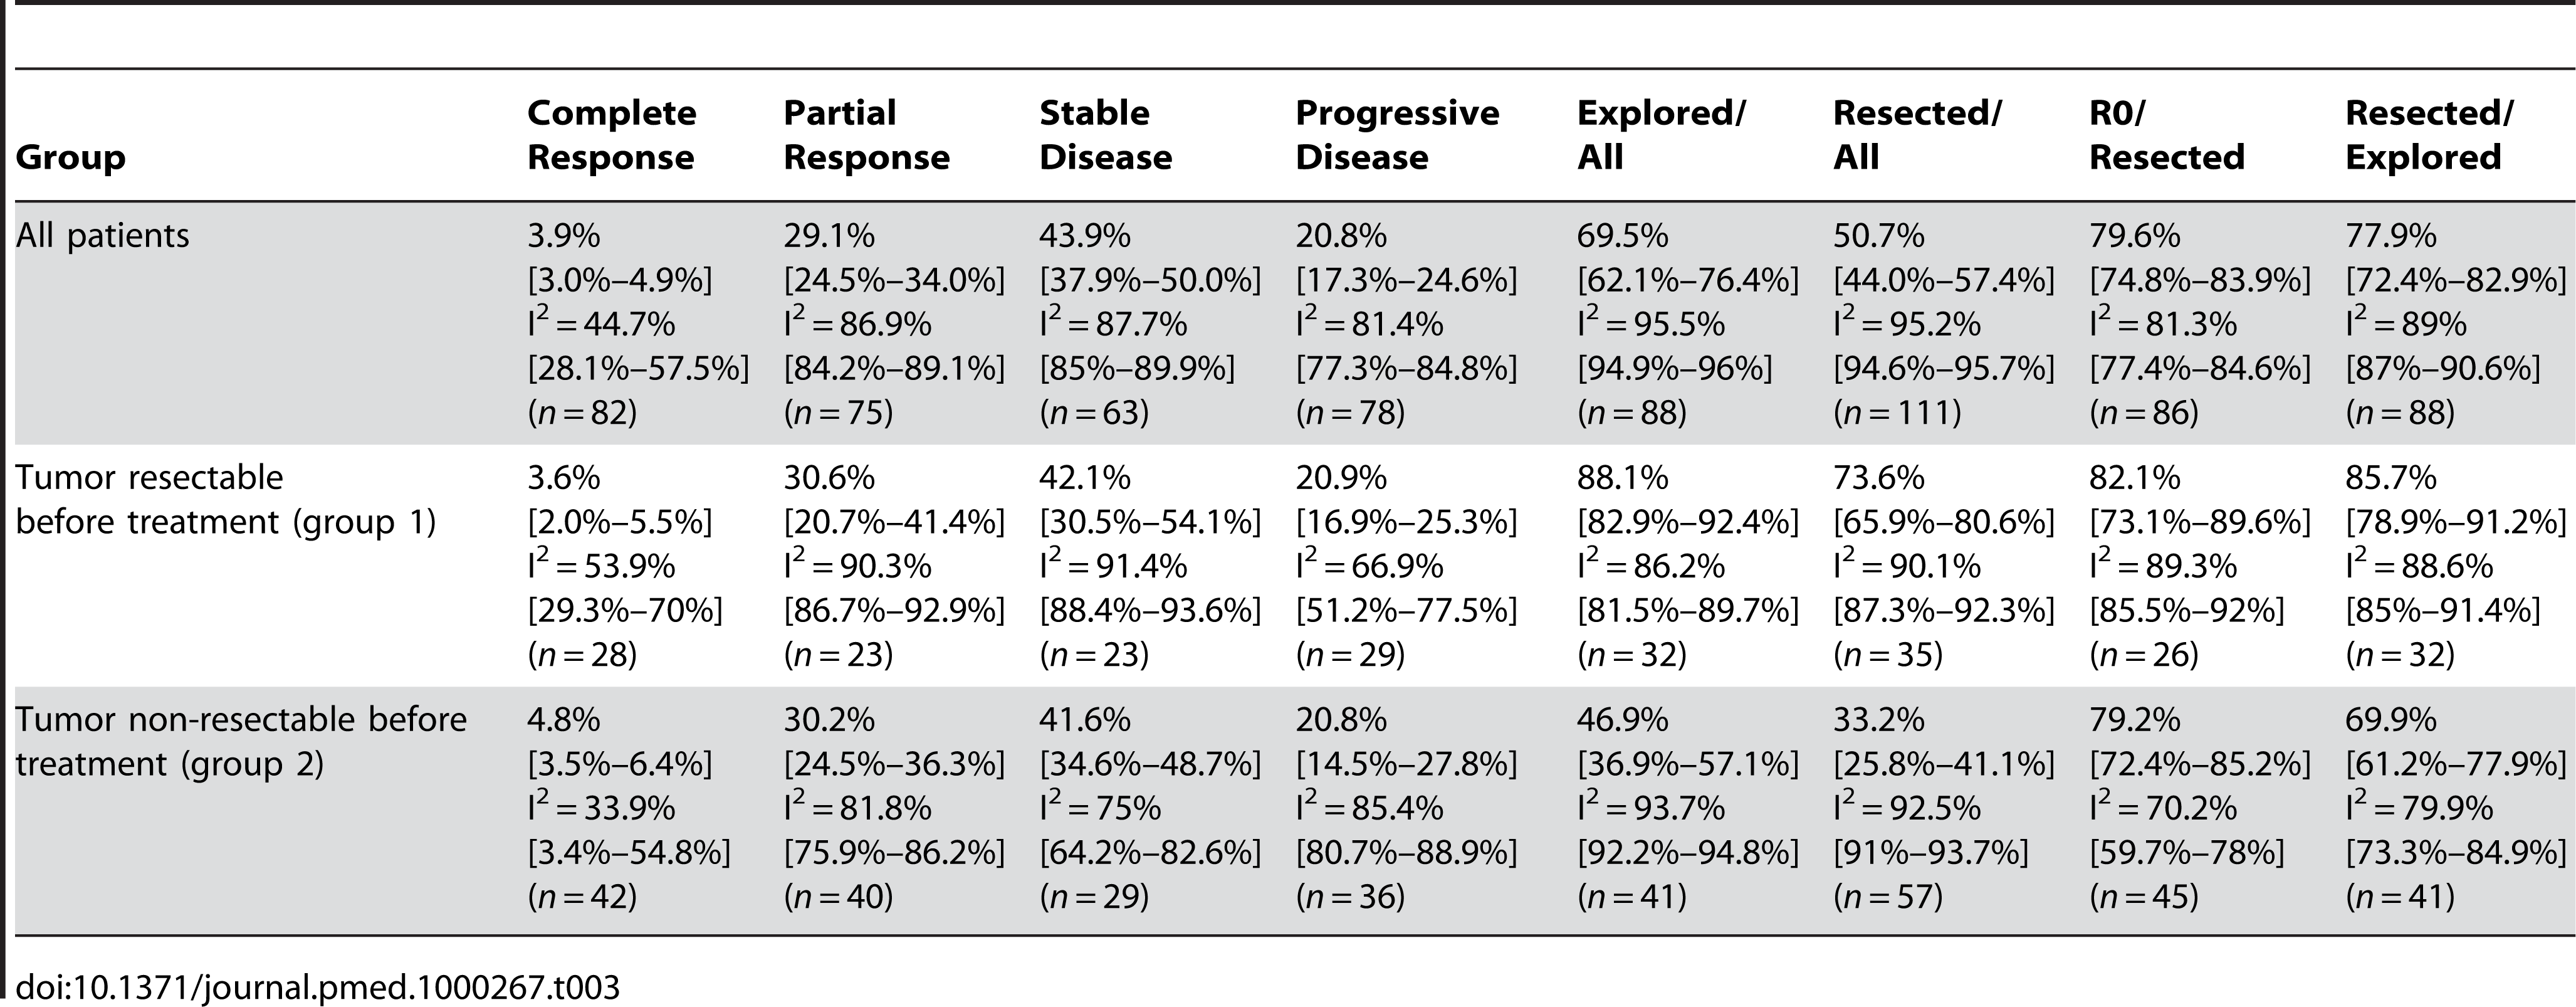 Estimates of exploration and resection percentages after neoadjuvant treatment and restaging, and estimates of patients with complete response/partial response, stable disease, and progressive disease including the 95% confidence interval from the random effect model and number of assessable studies for each group (<i>n</i>).